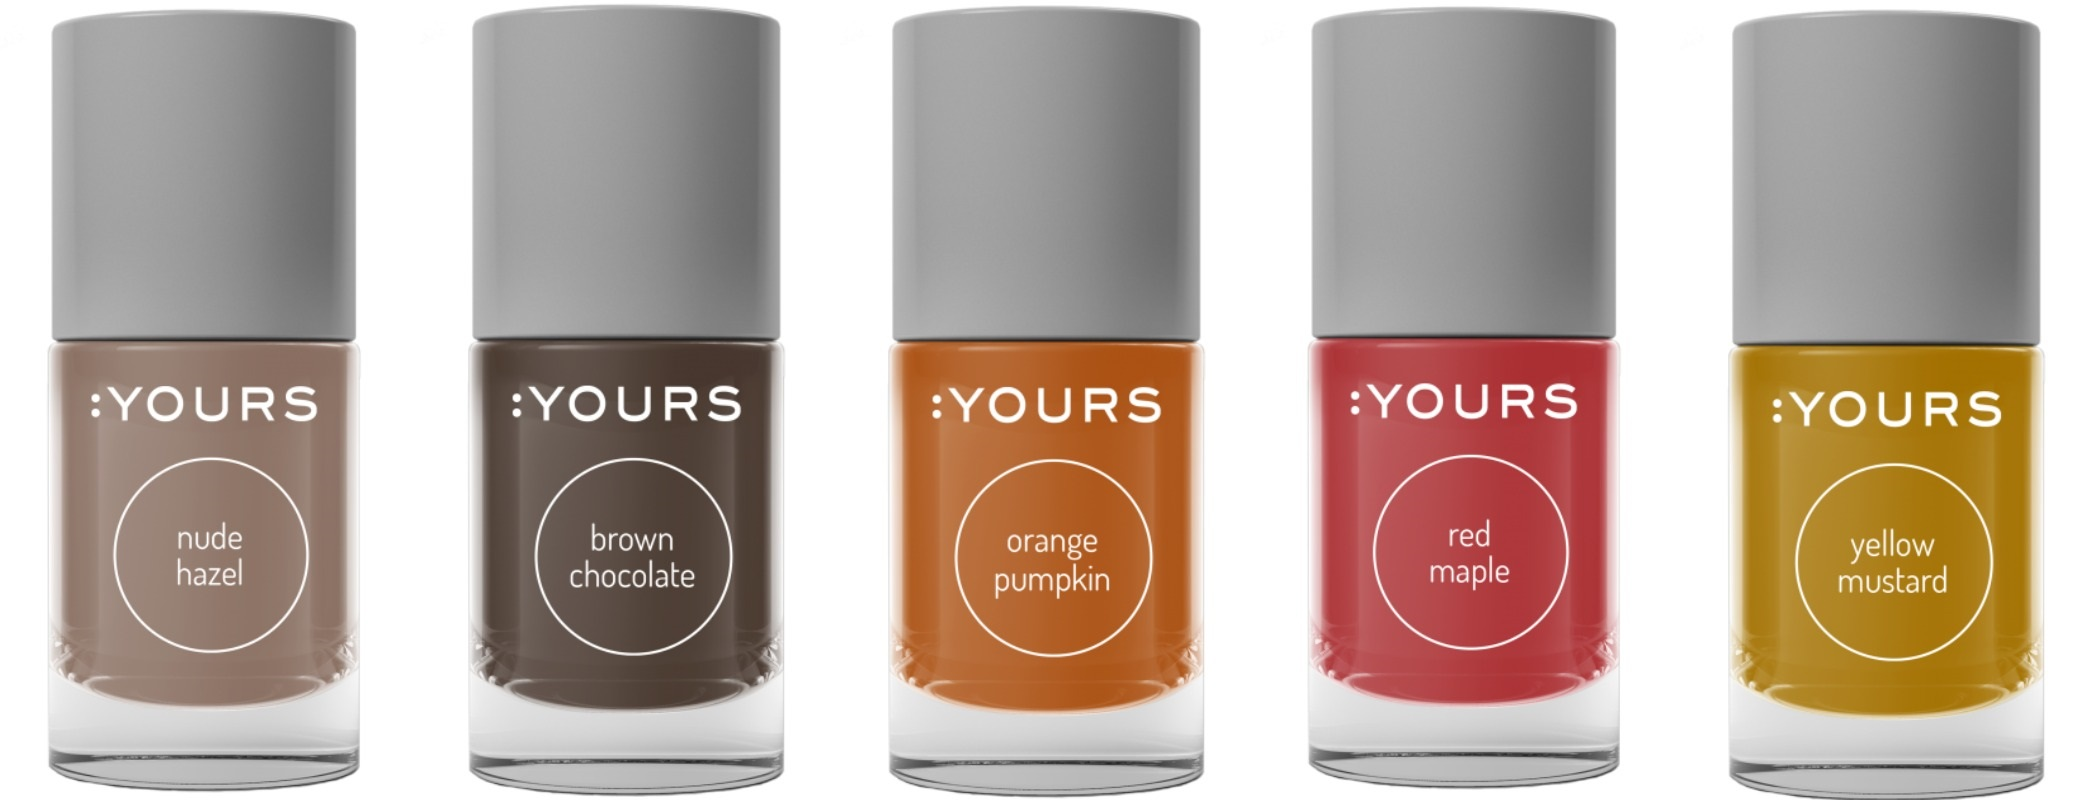 Yours-Elements-Fabulous-Fall